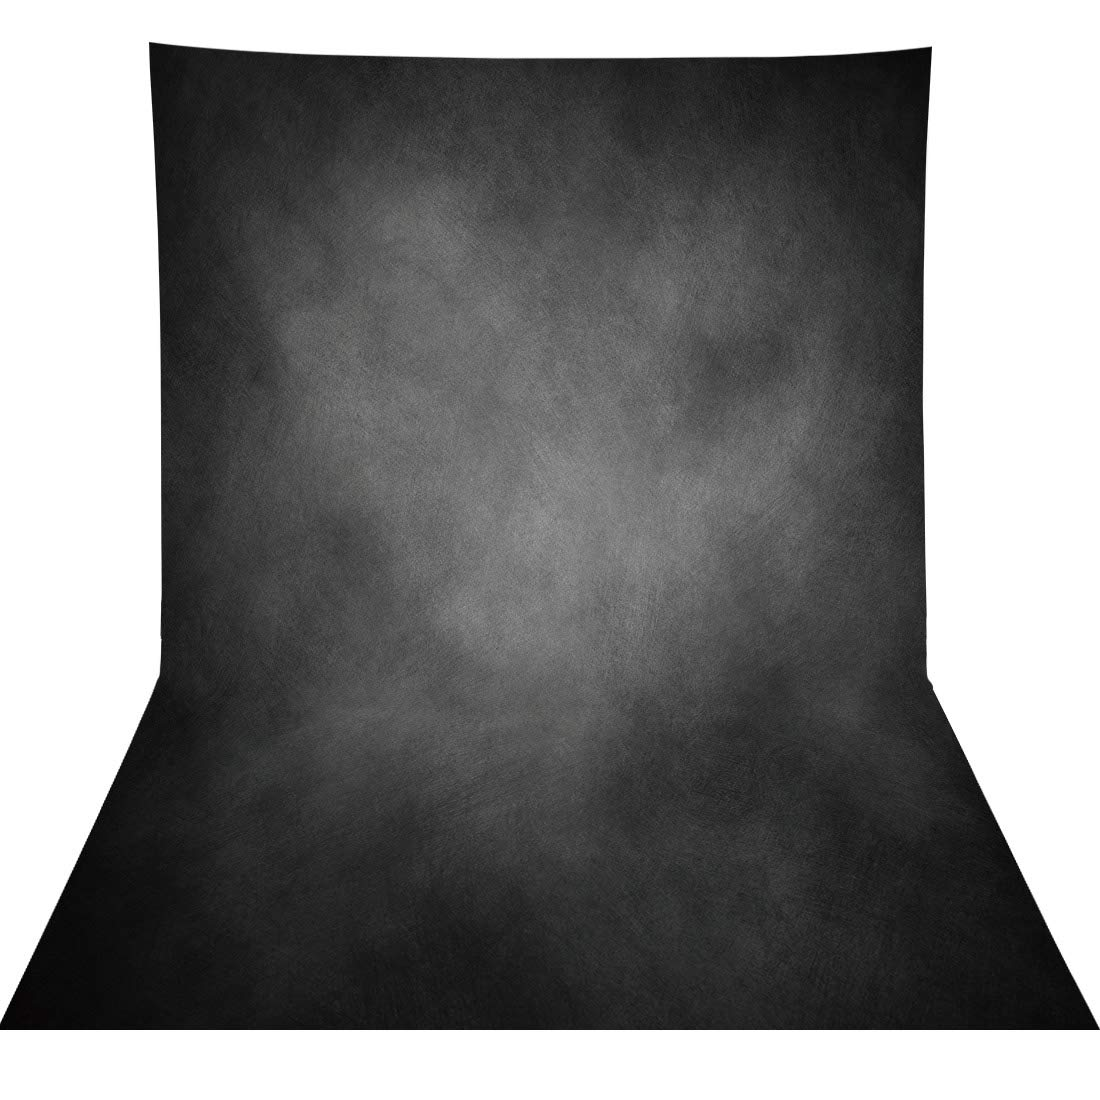 Allenjoy 5x7ft Fabric Black Vintage Grunge Photography Backdrop Supplies Old Master Abstract Texture Background Photographer Professional Portrait Pictures Photoshoot Props Favors Studio Booth Banners